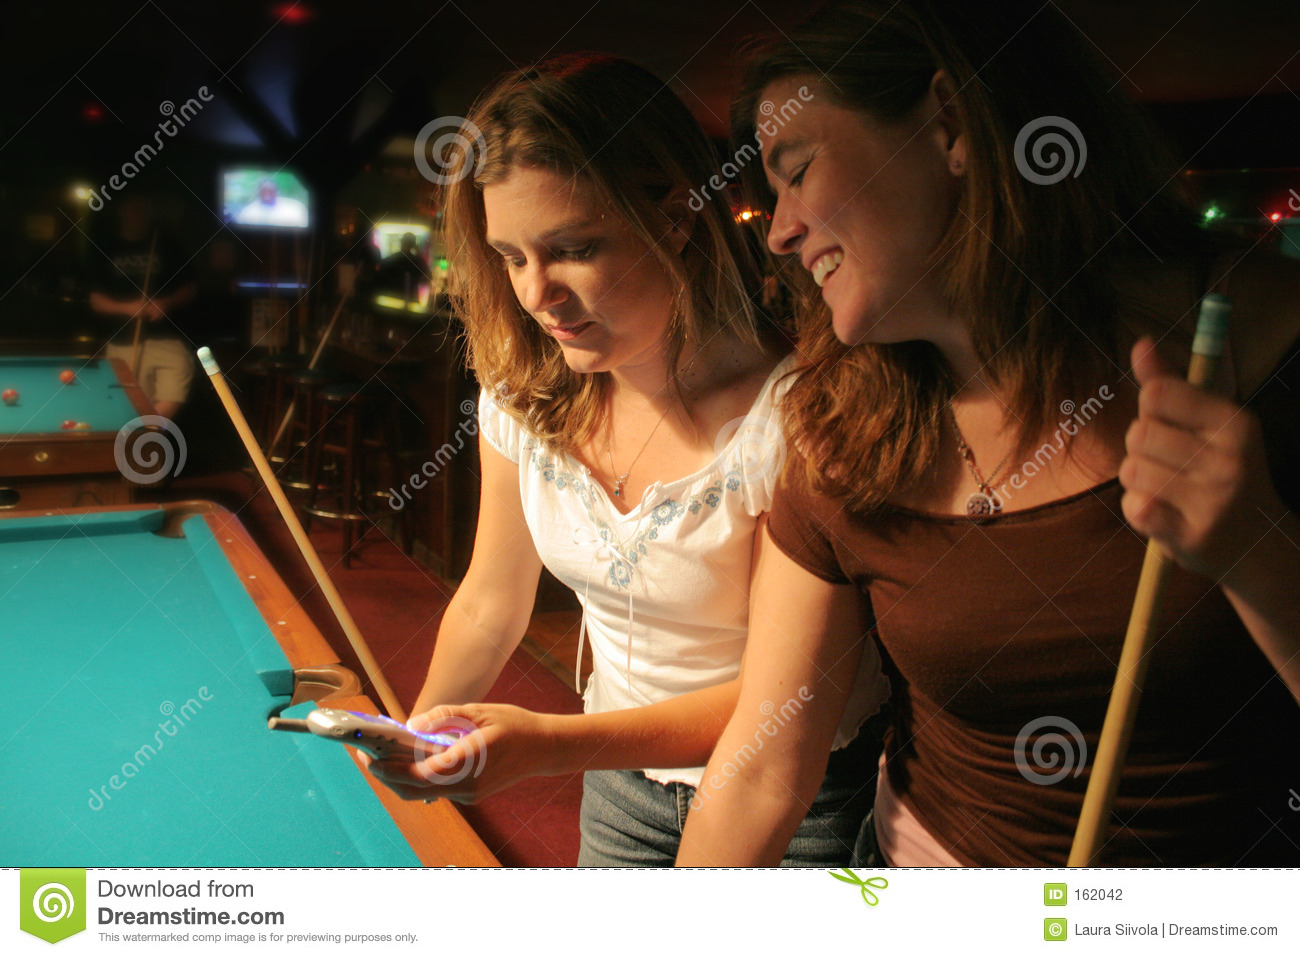 Texting at the pool hall